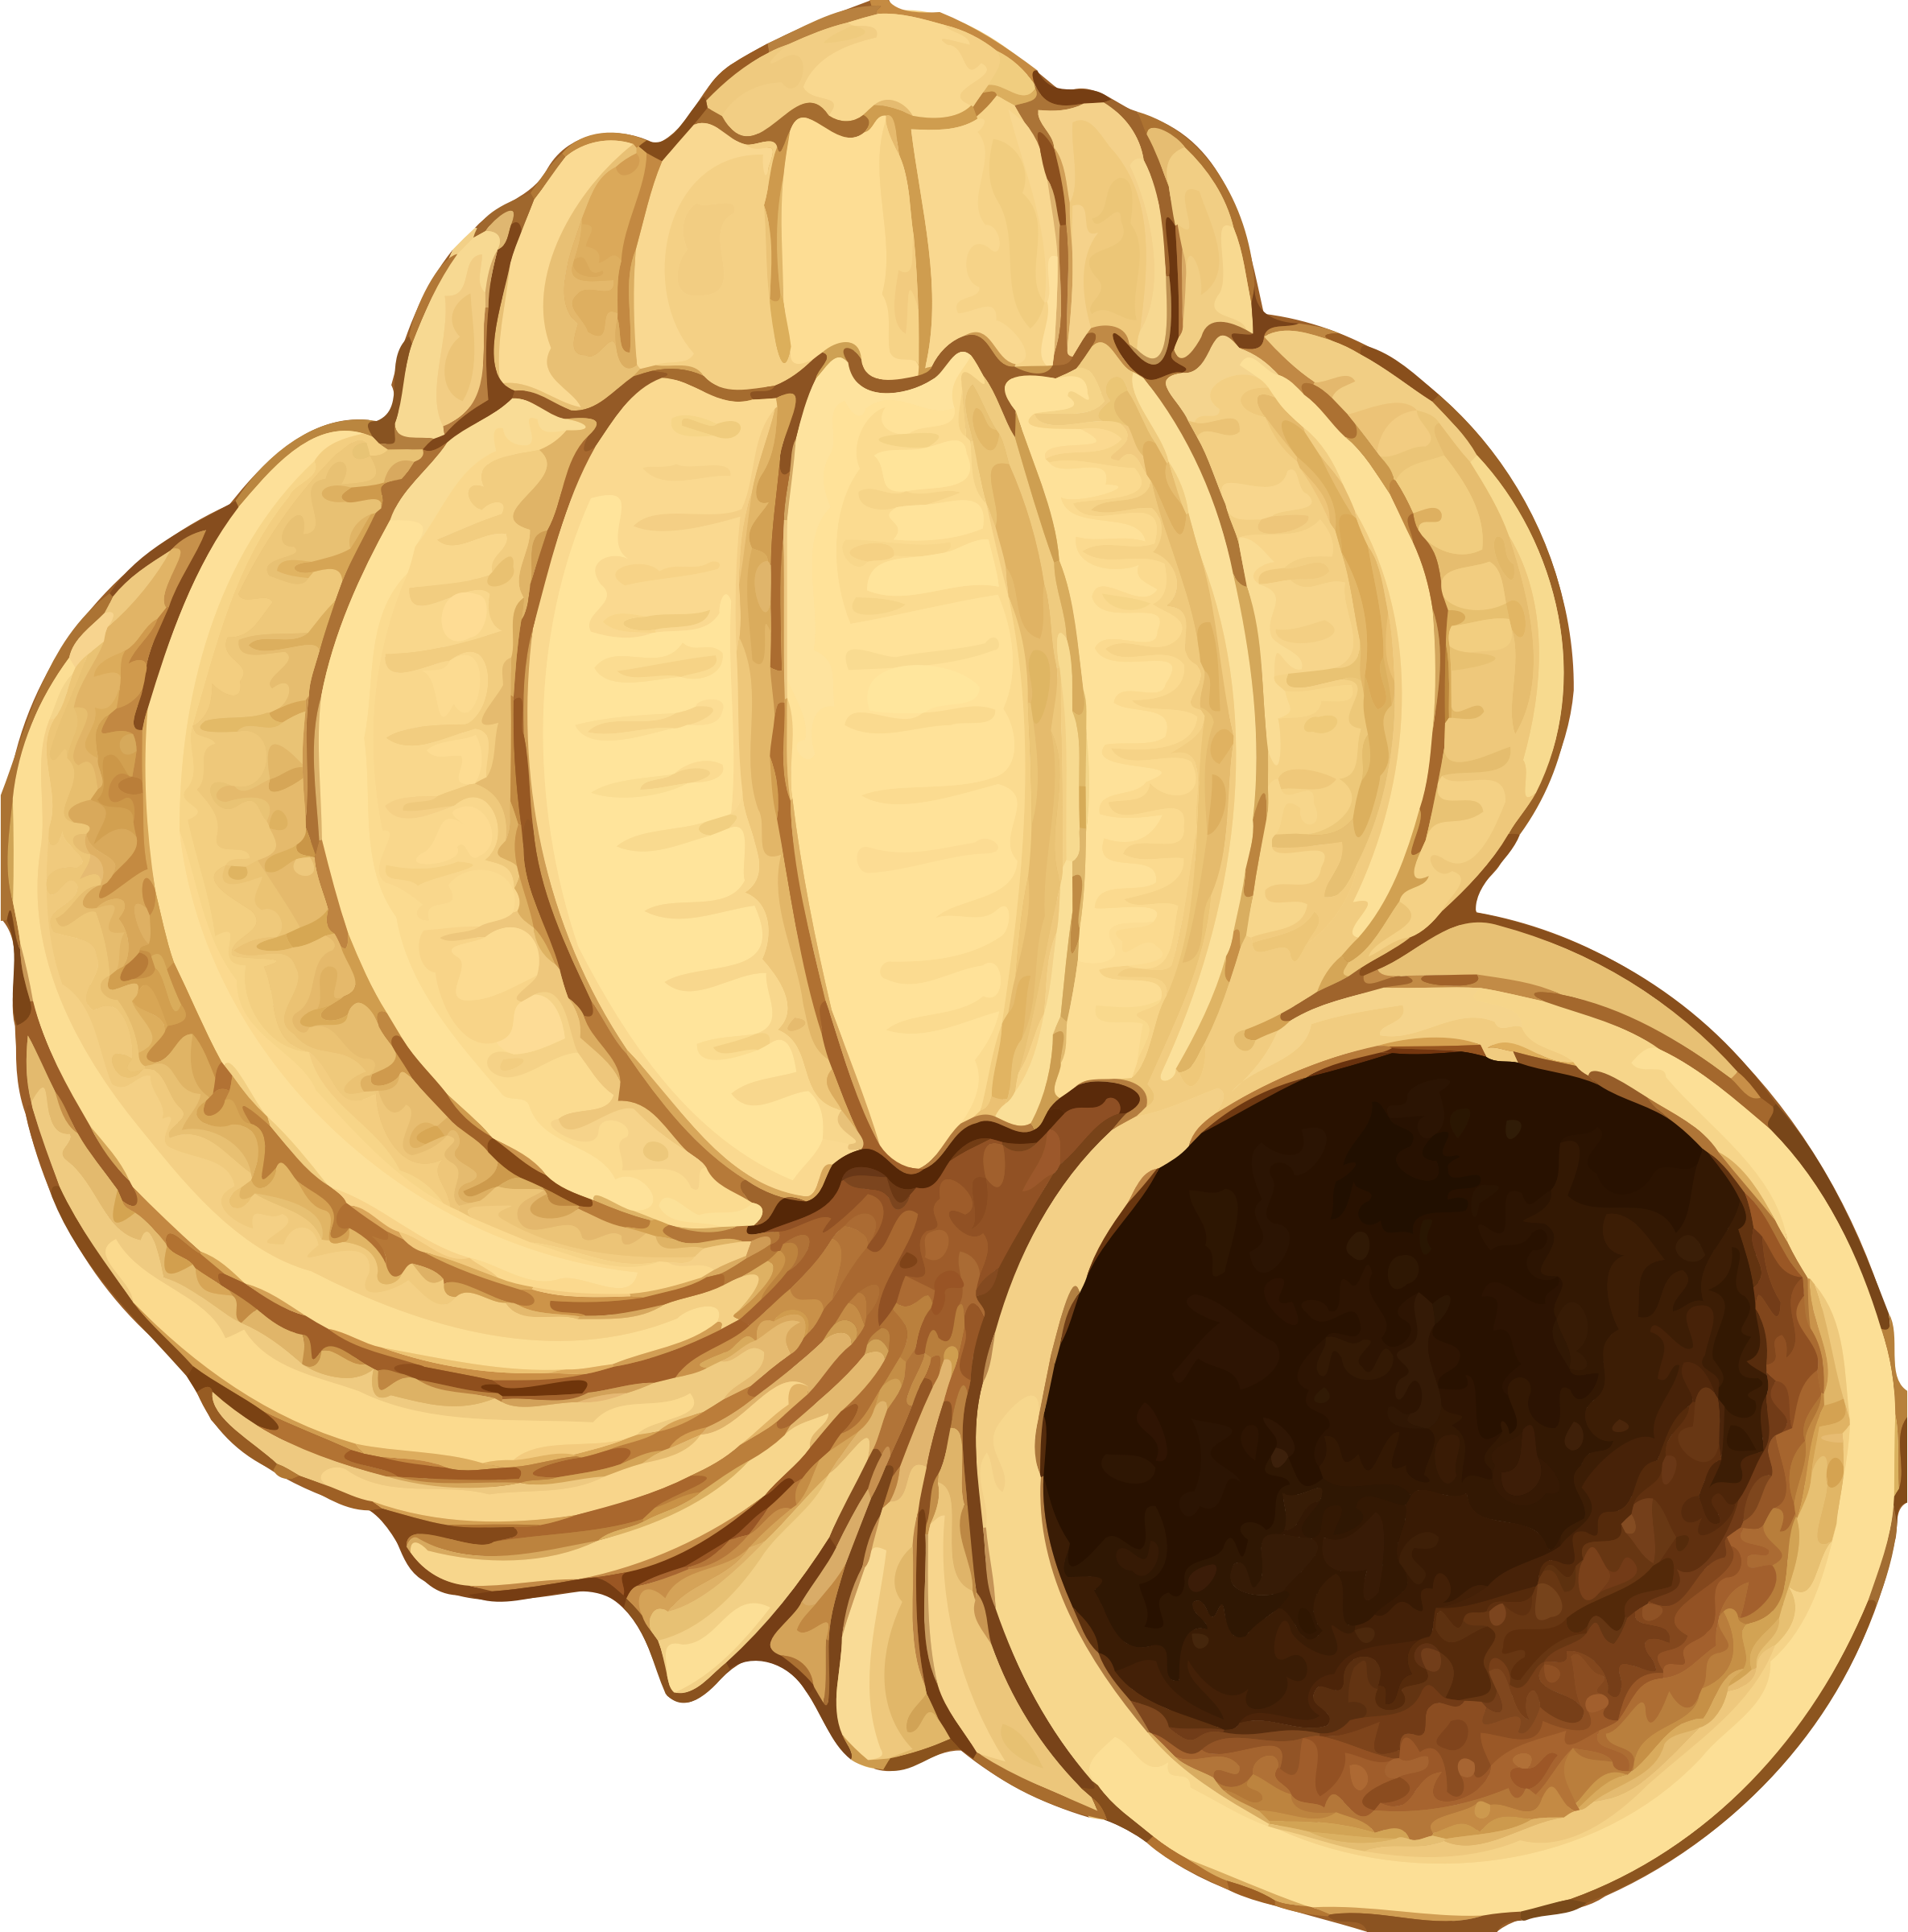 Twisting Conch shell Vector Clipart image.